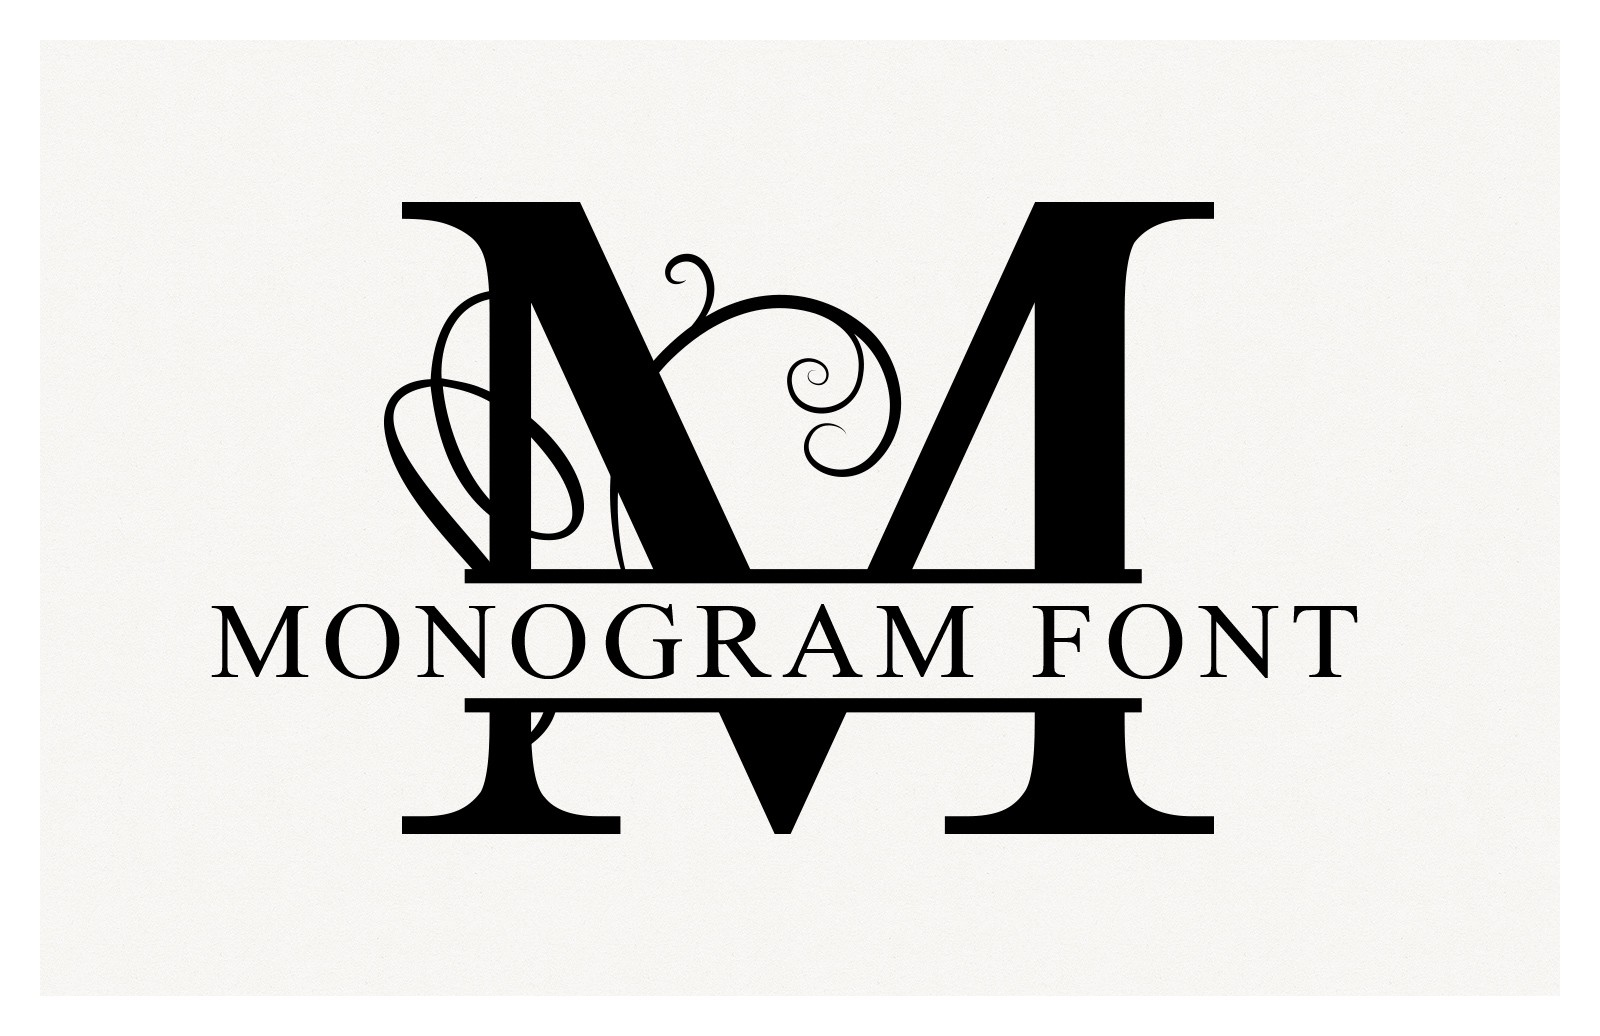 Split Monogram Font & Vectors